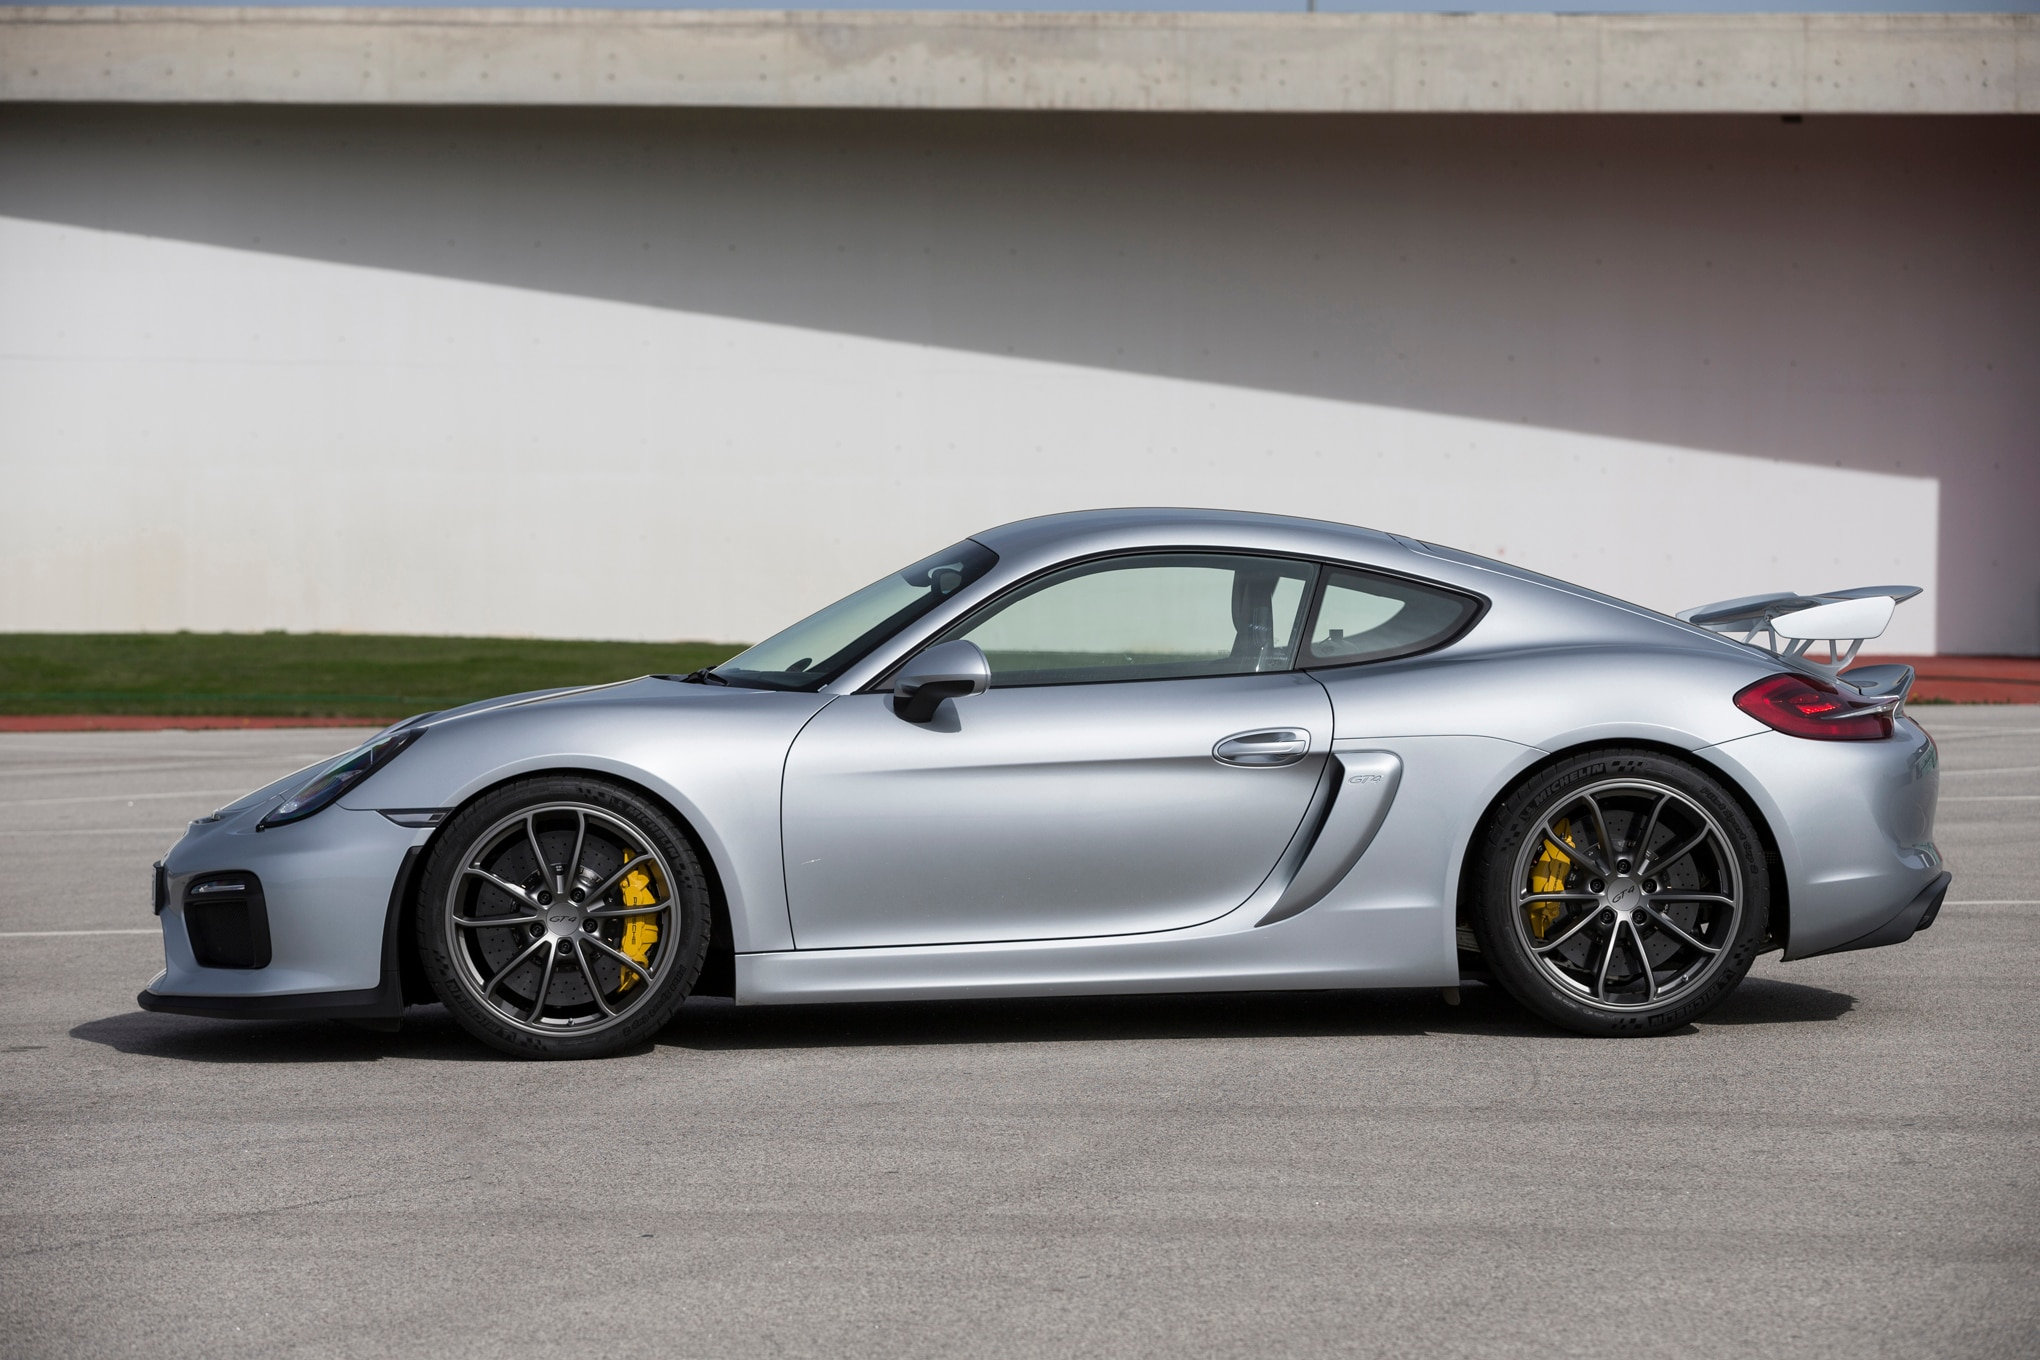 Image result for cayman gt4 snow